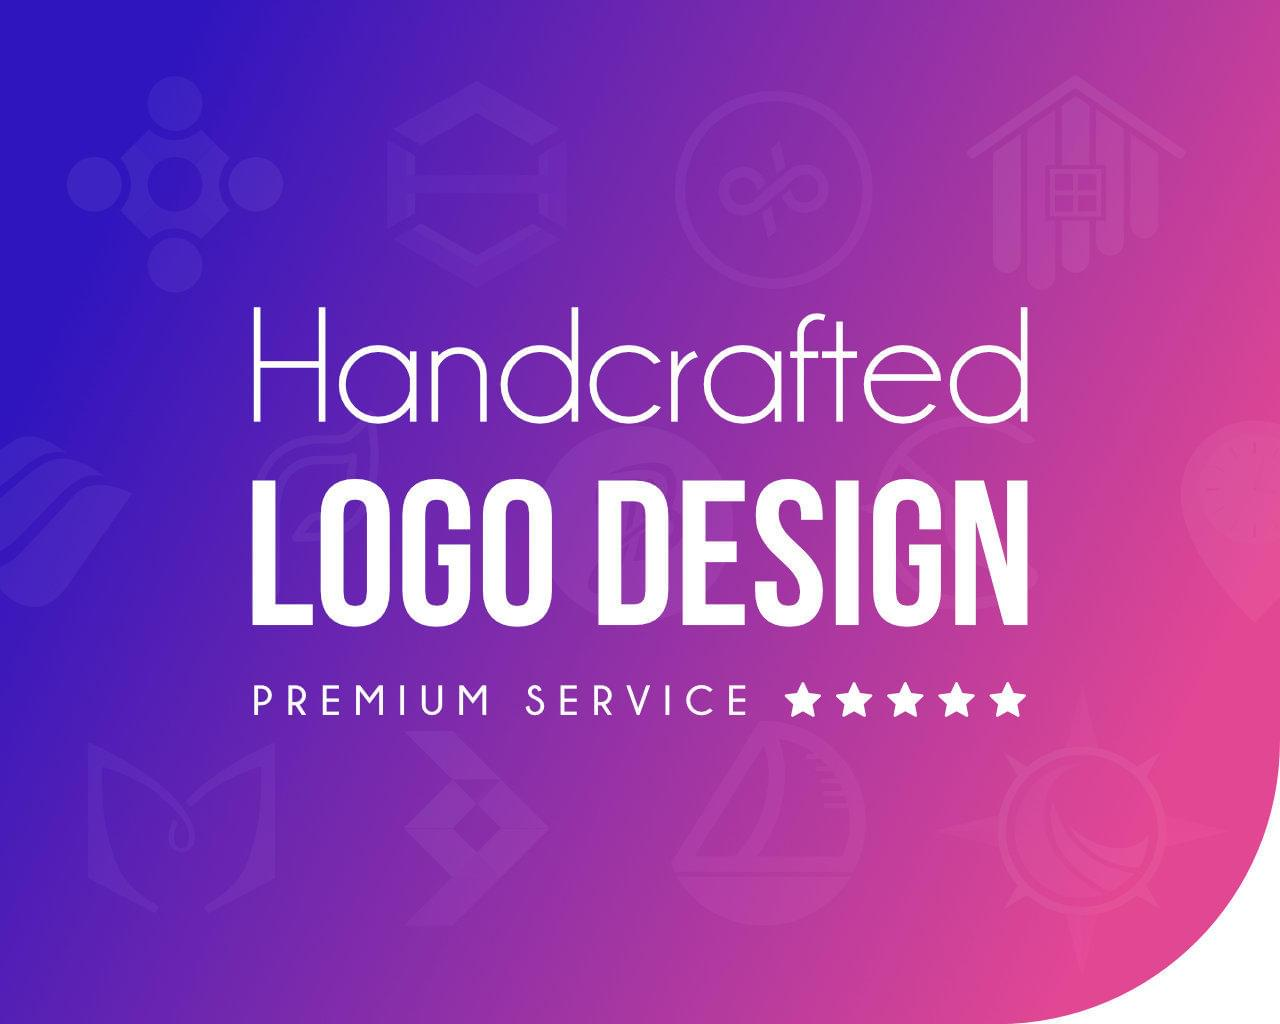 Handcrafted & Creative Logo Design by WhiteX - 113444